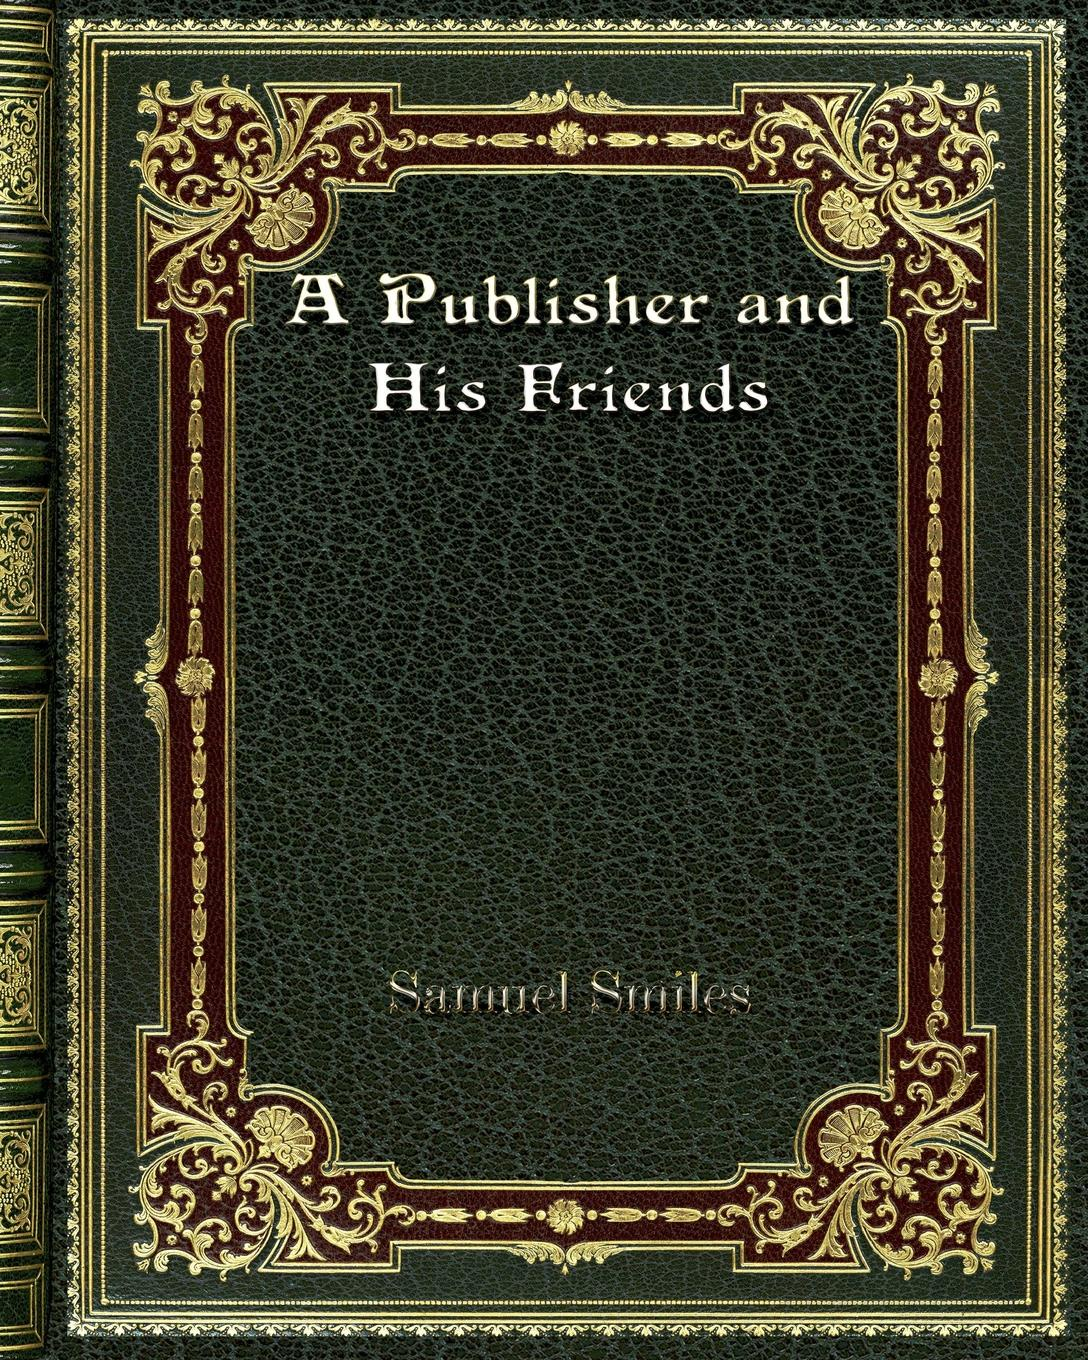 Samuel Smiles A Publisher and His Friends no one the scarred page of smiles